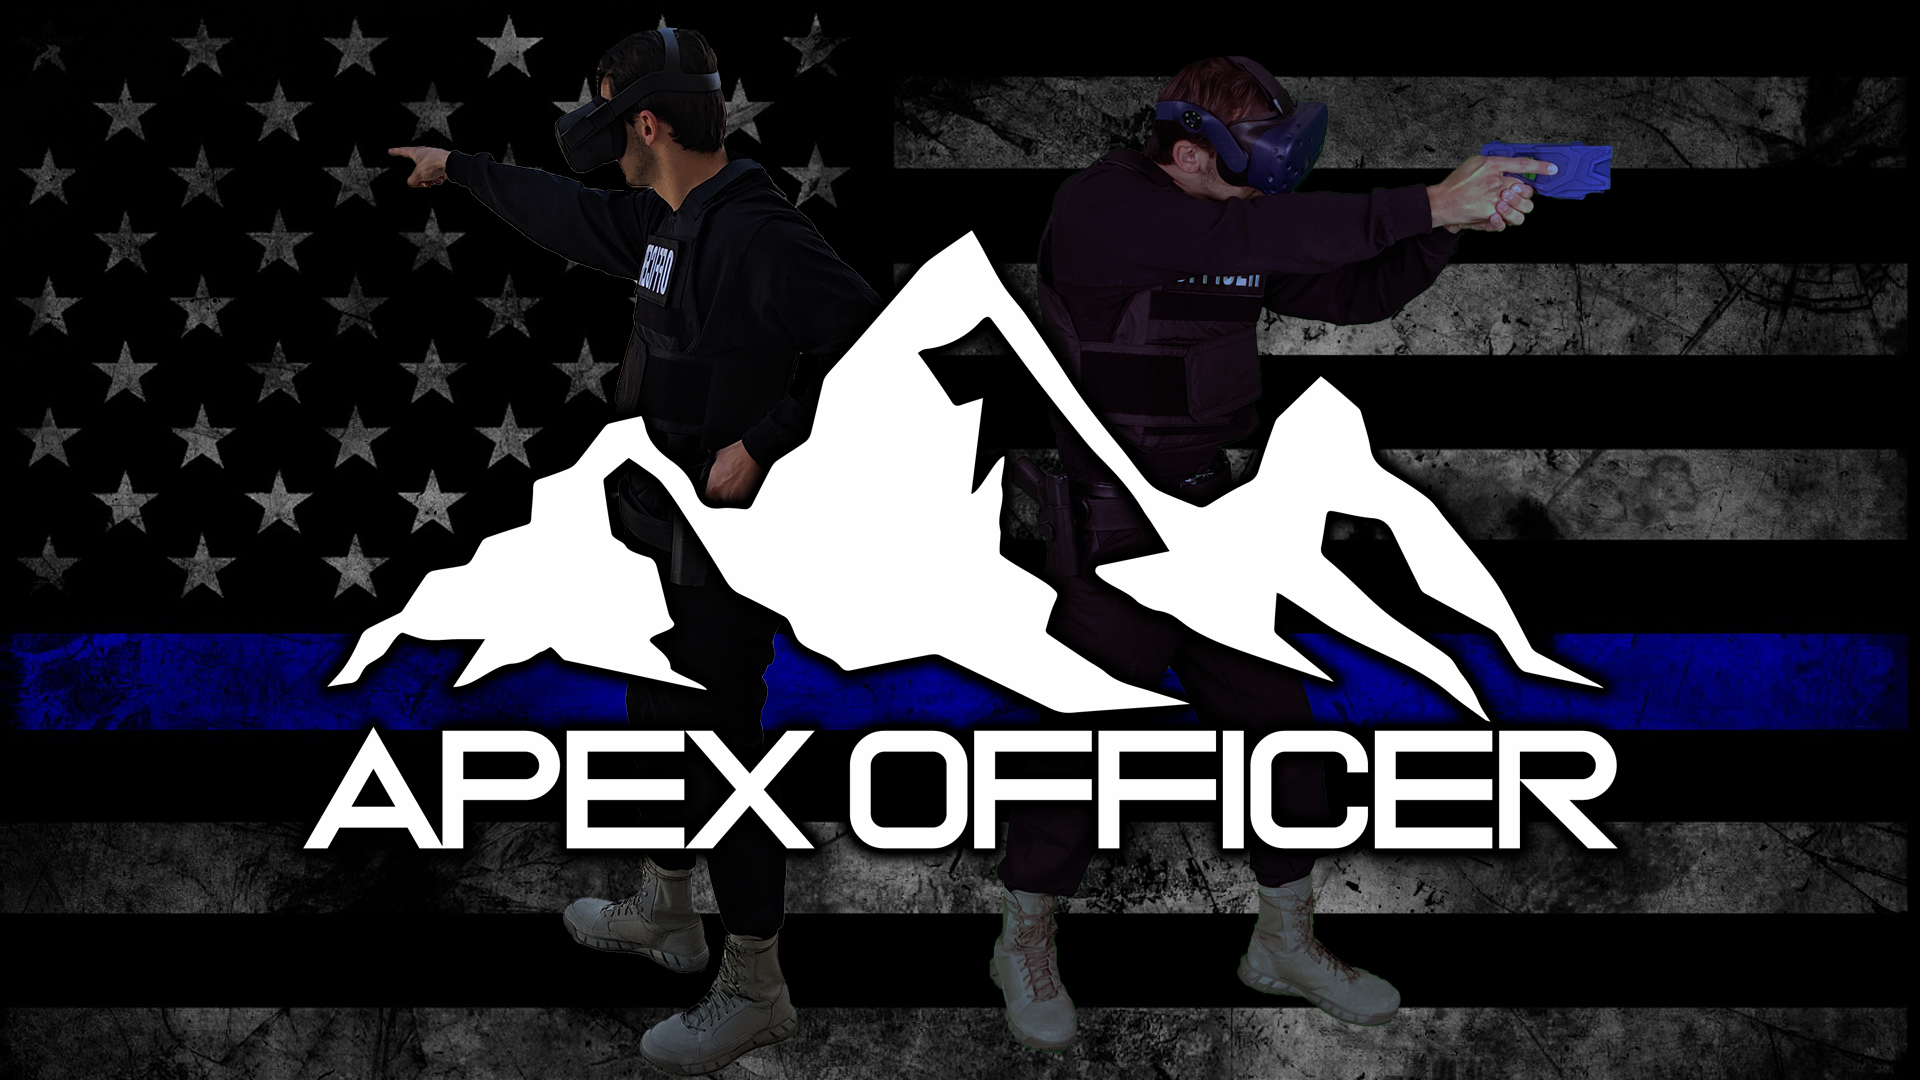 Apex Officer of the Week award was created to recognize police officers that have worked to keep our communities safe.